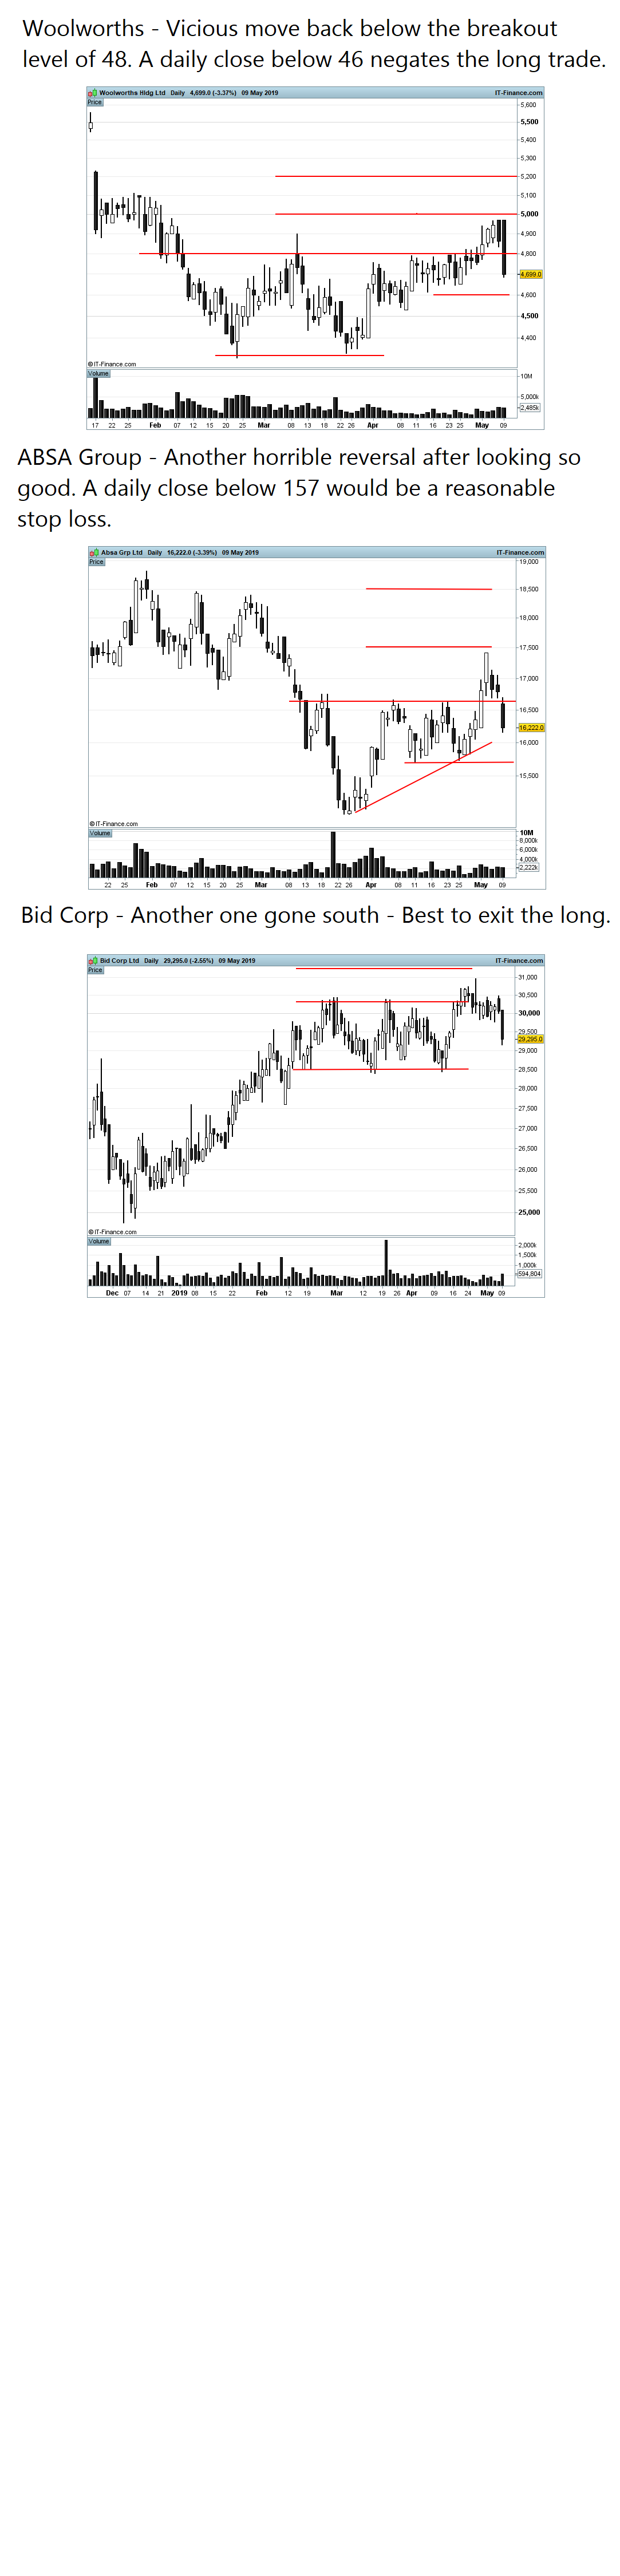 Charts of Interest 10 May 2019 WHL, ABG & BID